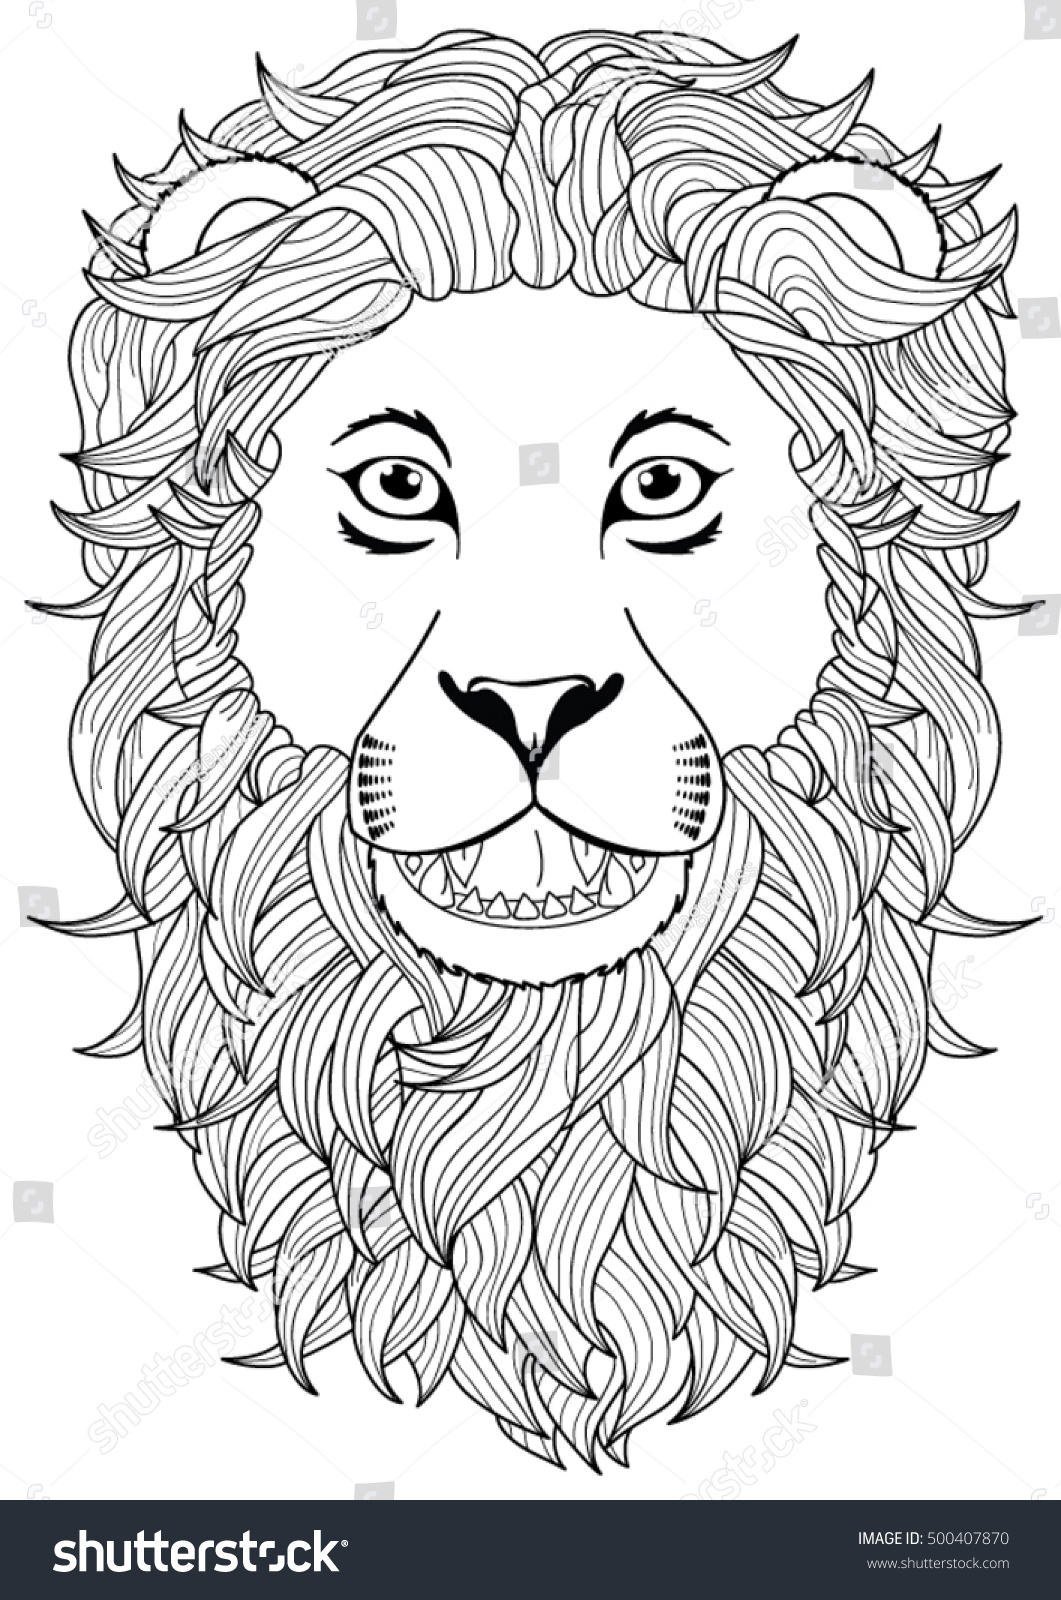 Lion Head Coloring Page Stock Vector 500407870 - Shutterstock